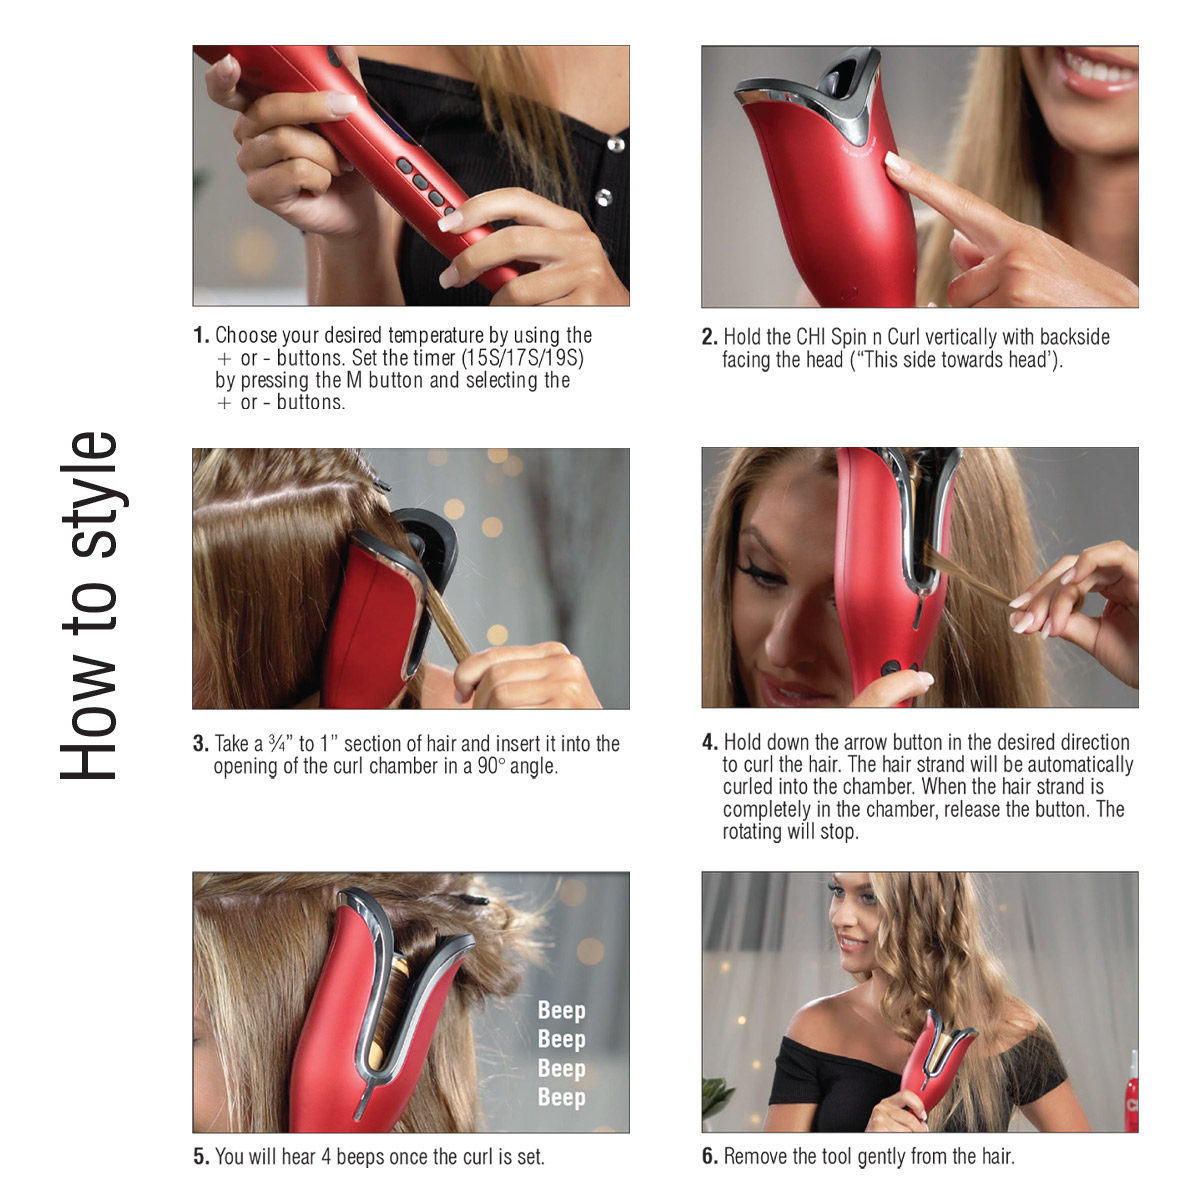 CHI Spin N Curl Ruby Red - How To Style Guide